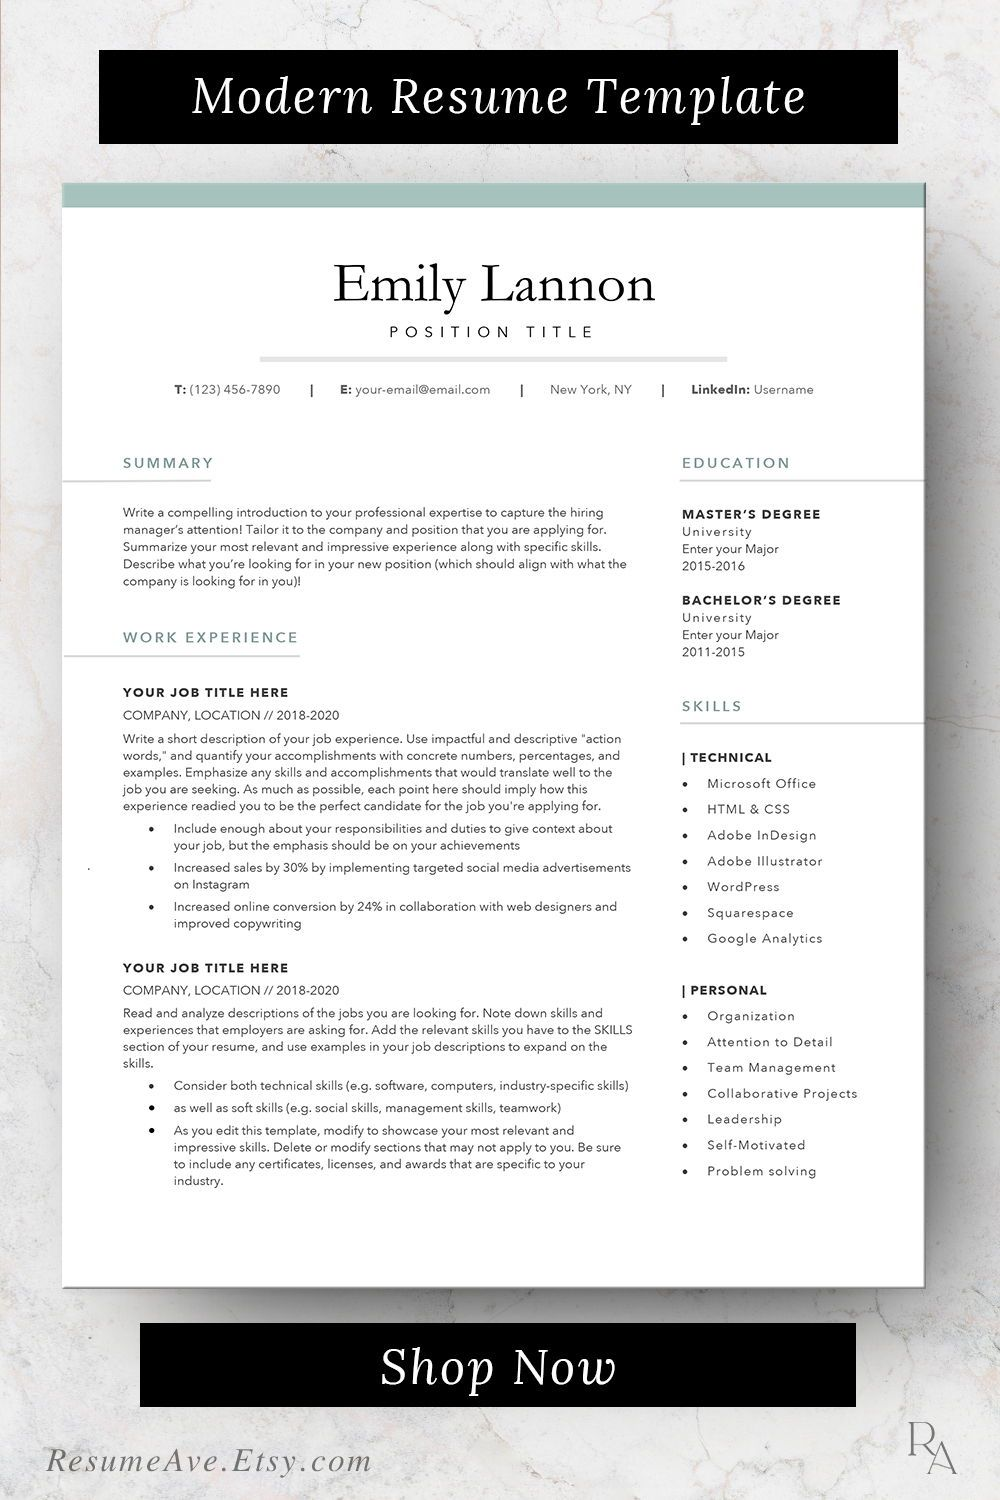 Feminine Resume Template Word With Green Border Simple Design Etsy Resume Template Word Teacher Resume Template Resume Skills List